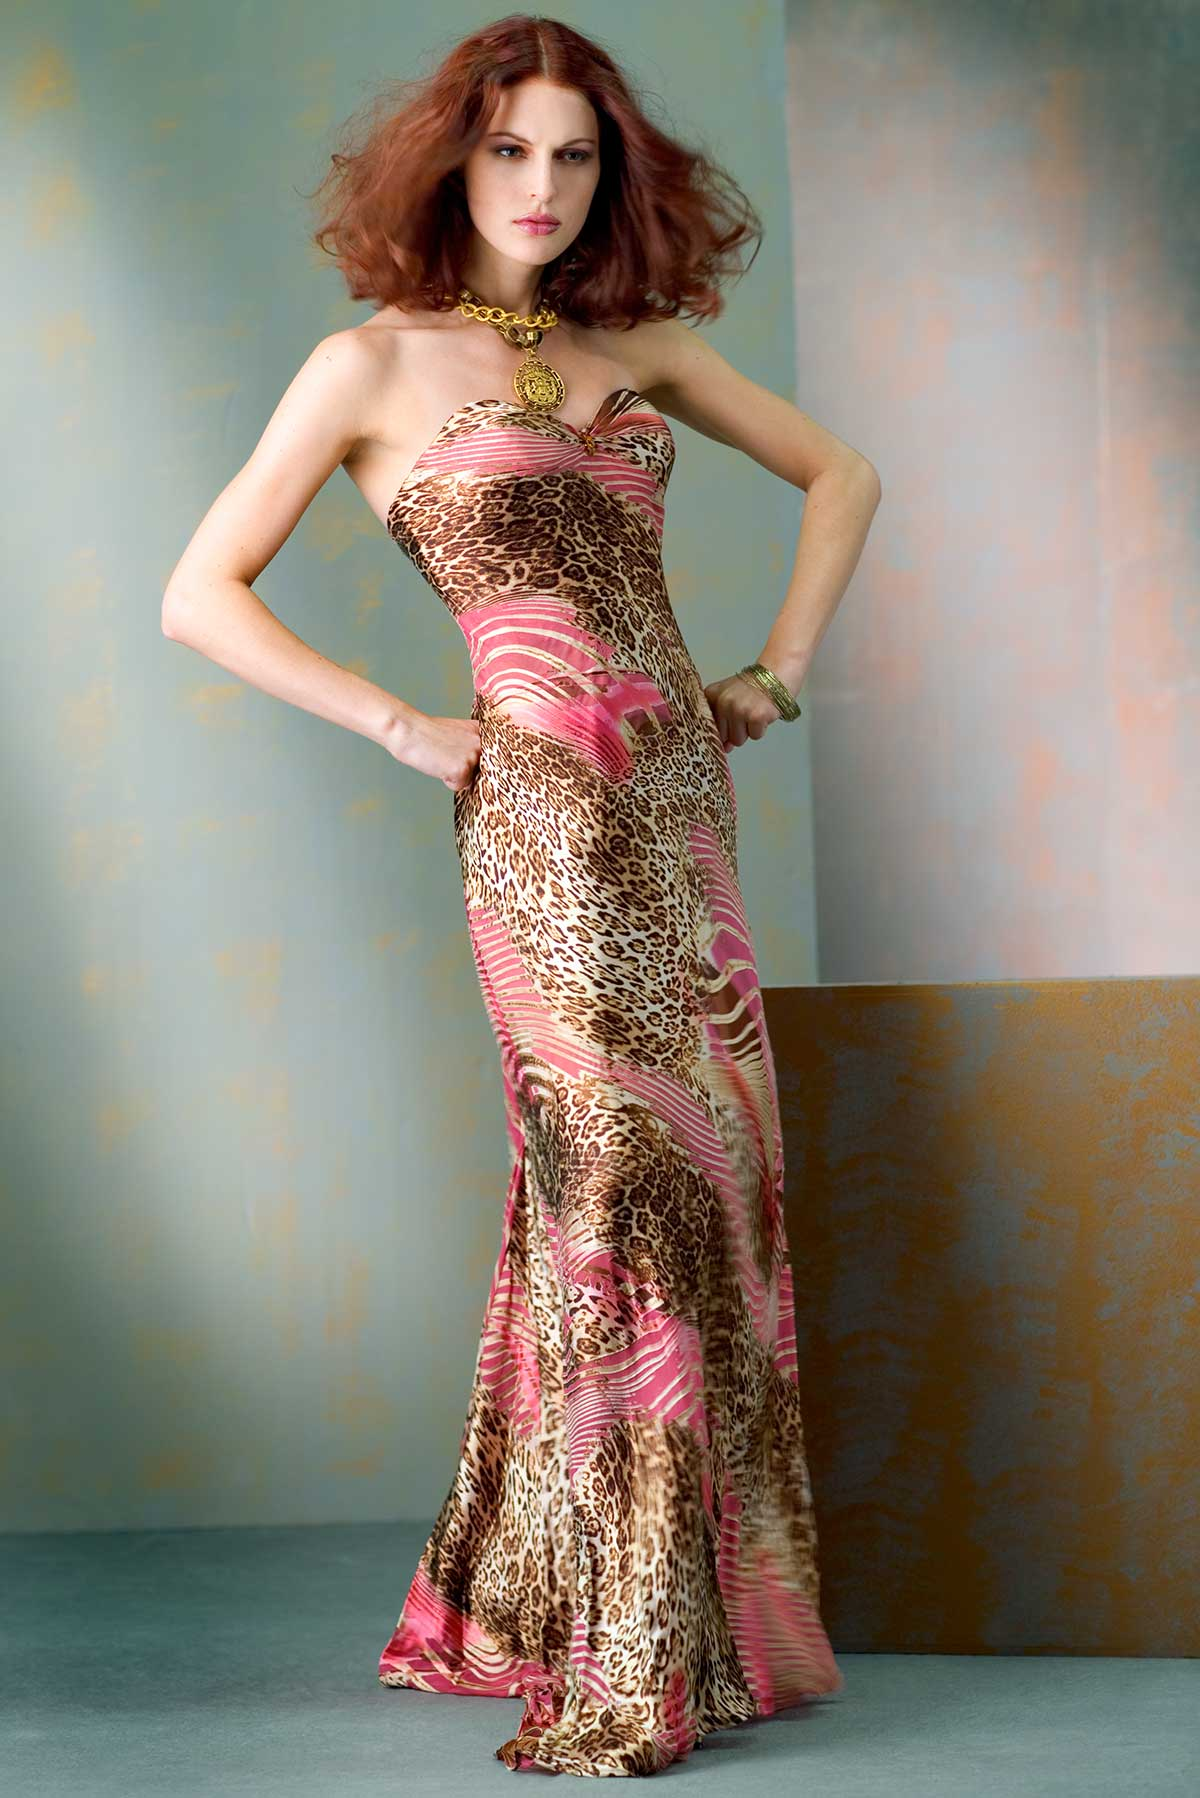 PINK LEOPARD- Constance-McCardle Fashion Design | Photography: Rick Luettke